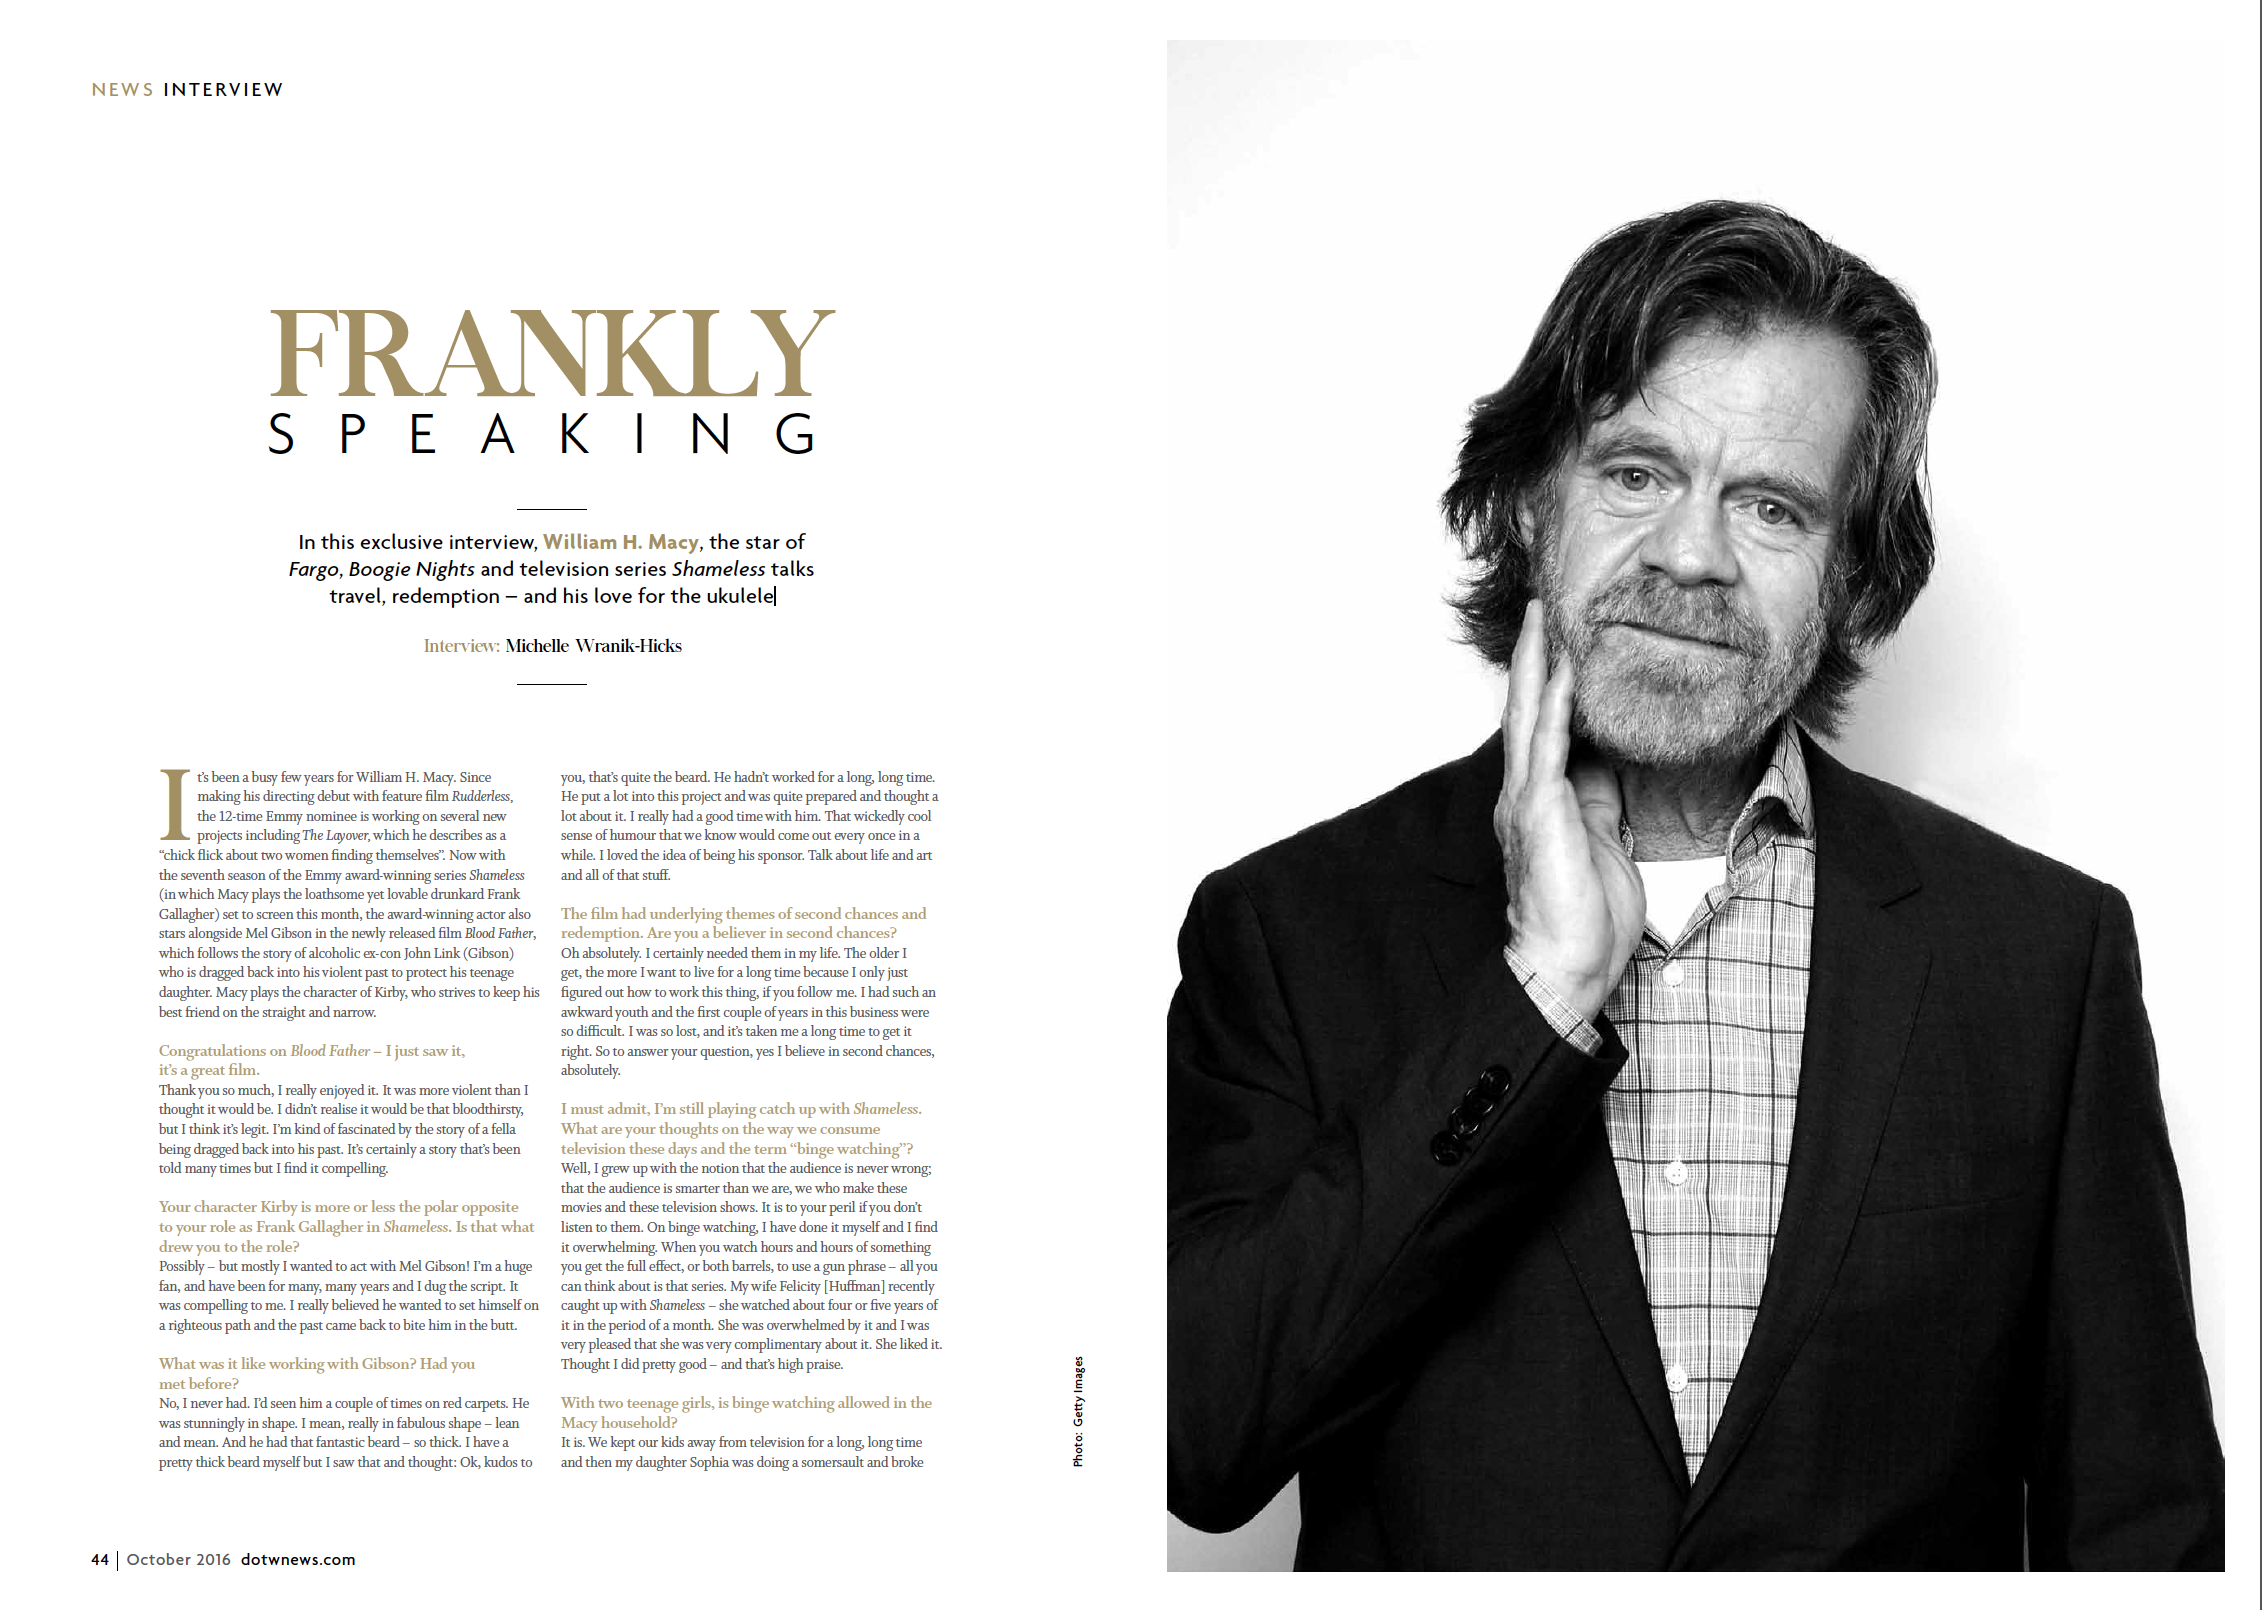 FRANKLY SPEAKING: AN INTERVIEW WITH WILLIAM H. MACY